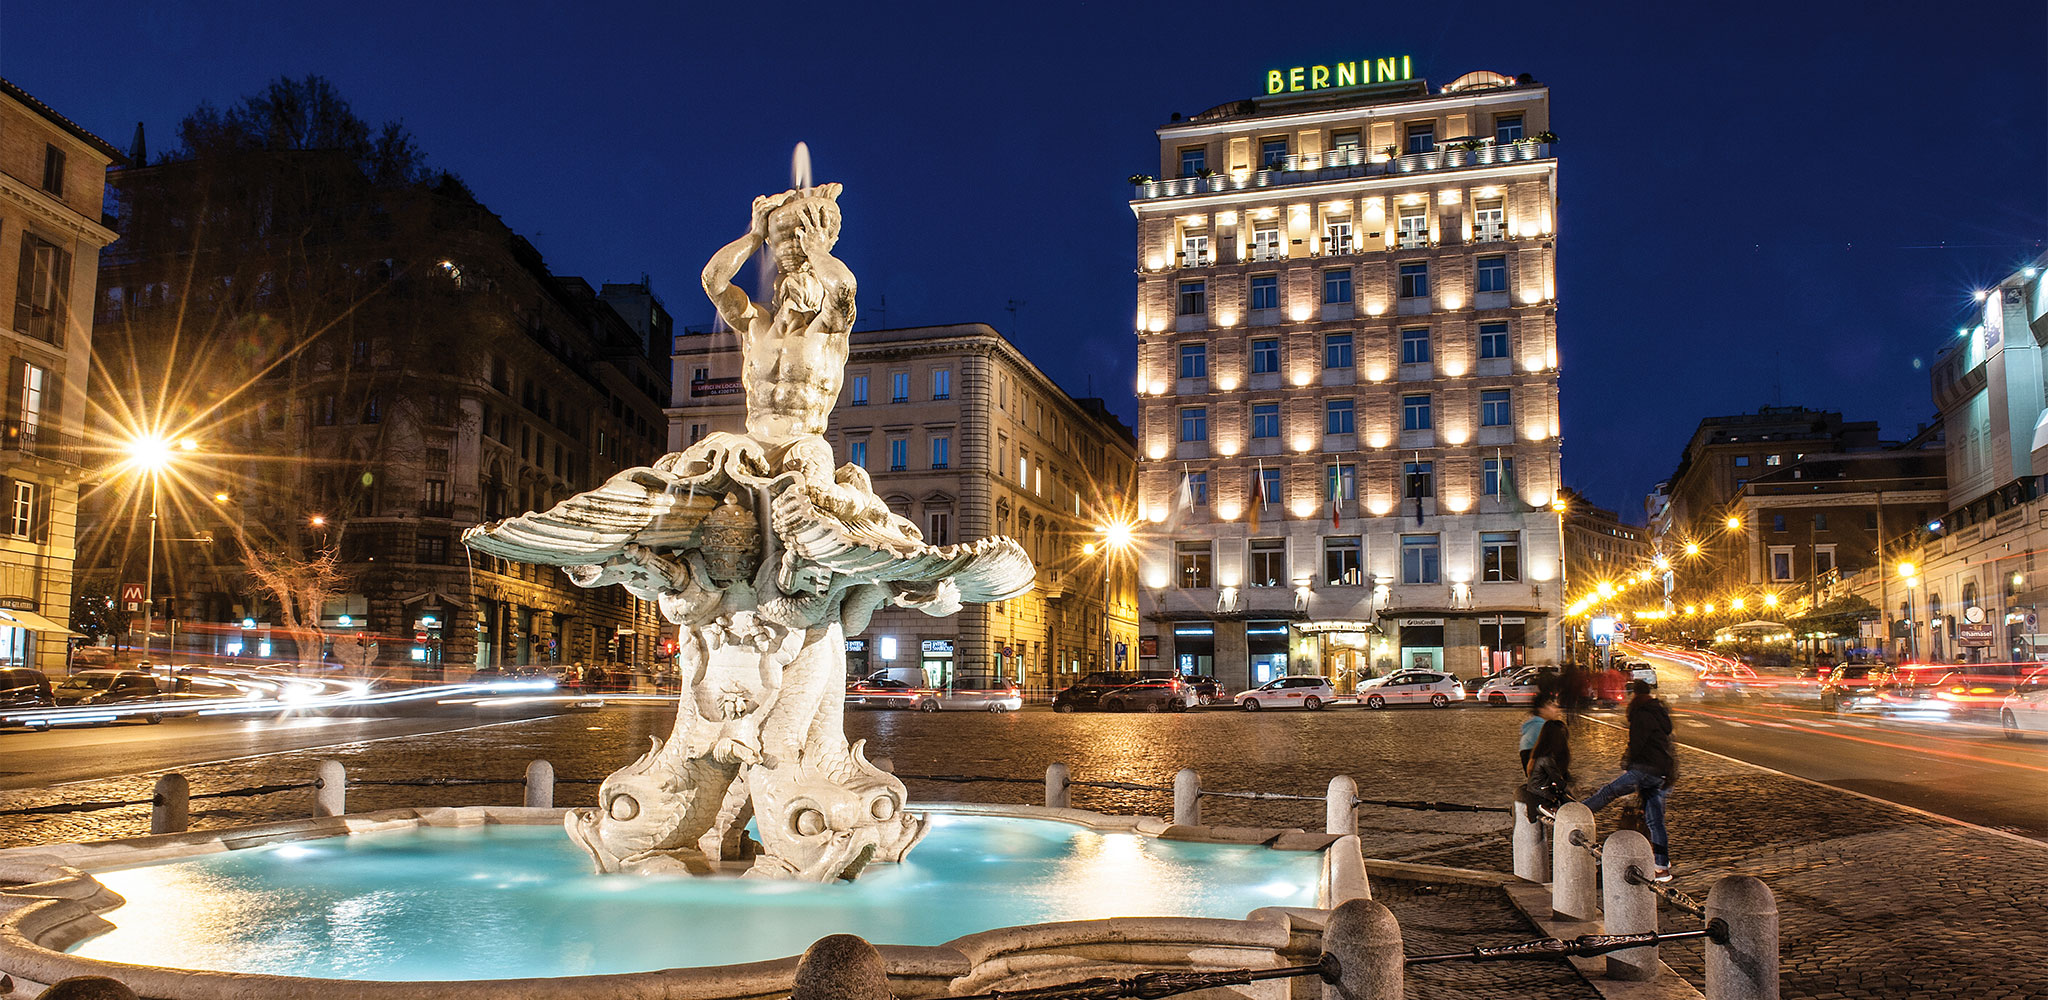 Hotel Bernini Bristol 5 Star Hotel In Rome Near Via Veneto